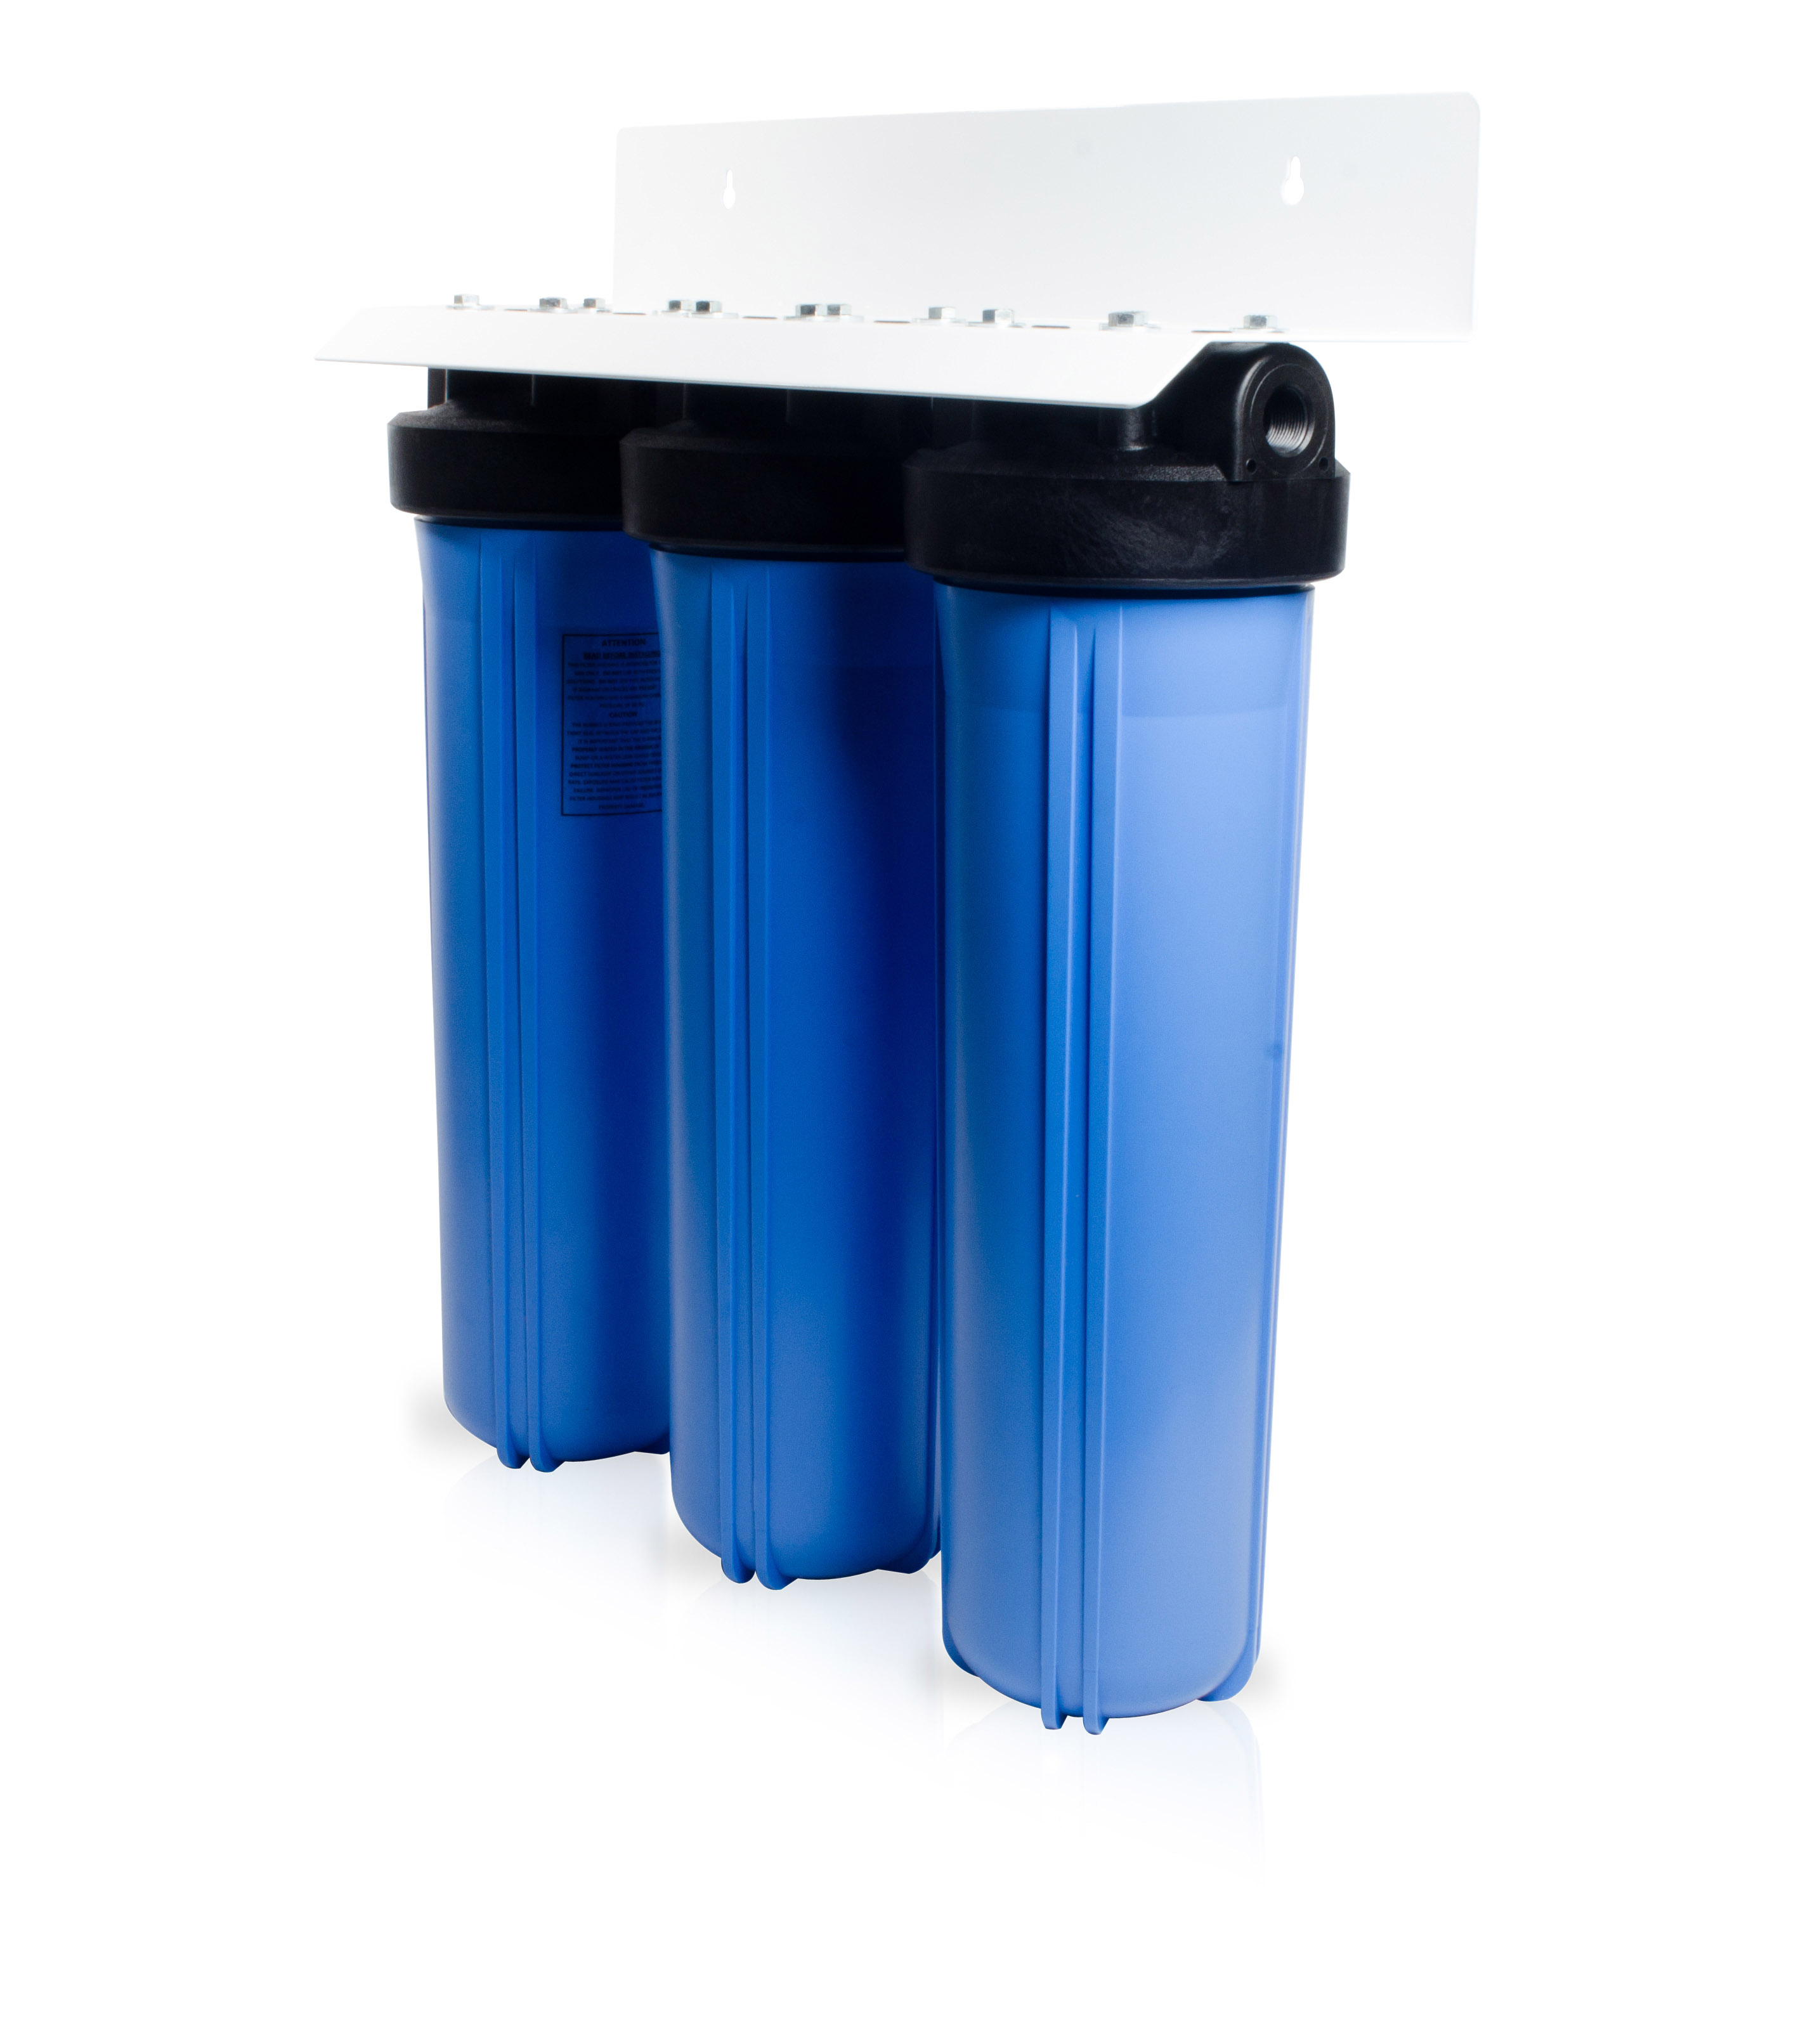 APEX MR-3020 Whole House GAC Water Filter System with Activated Alumina by APEX Water Filters, Inc